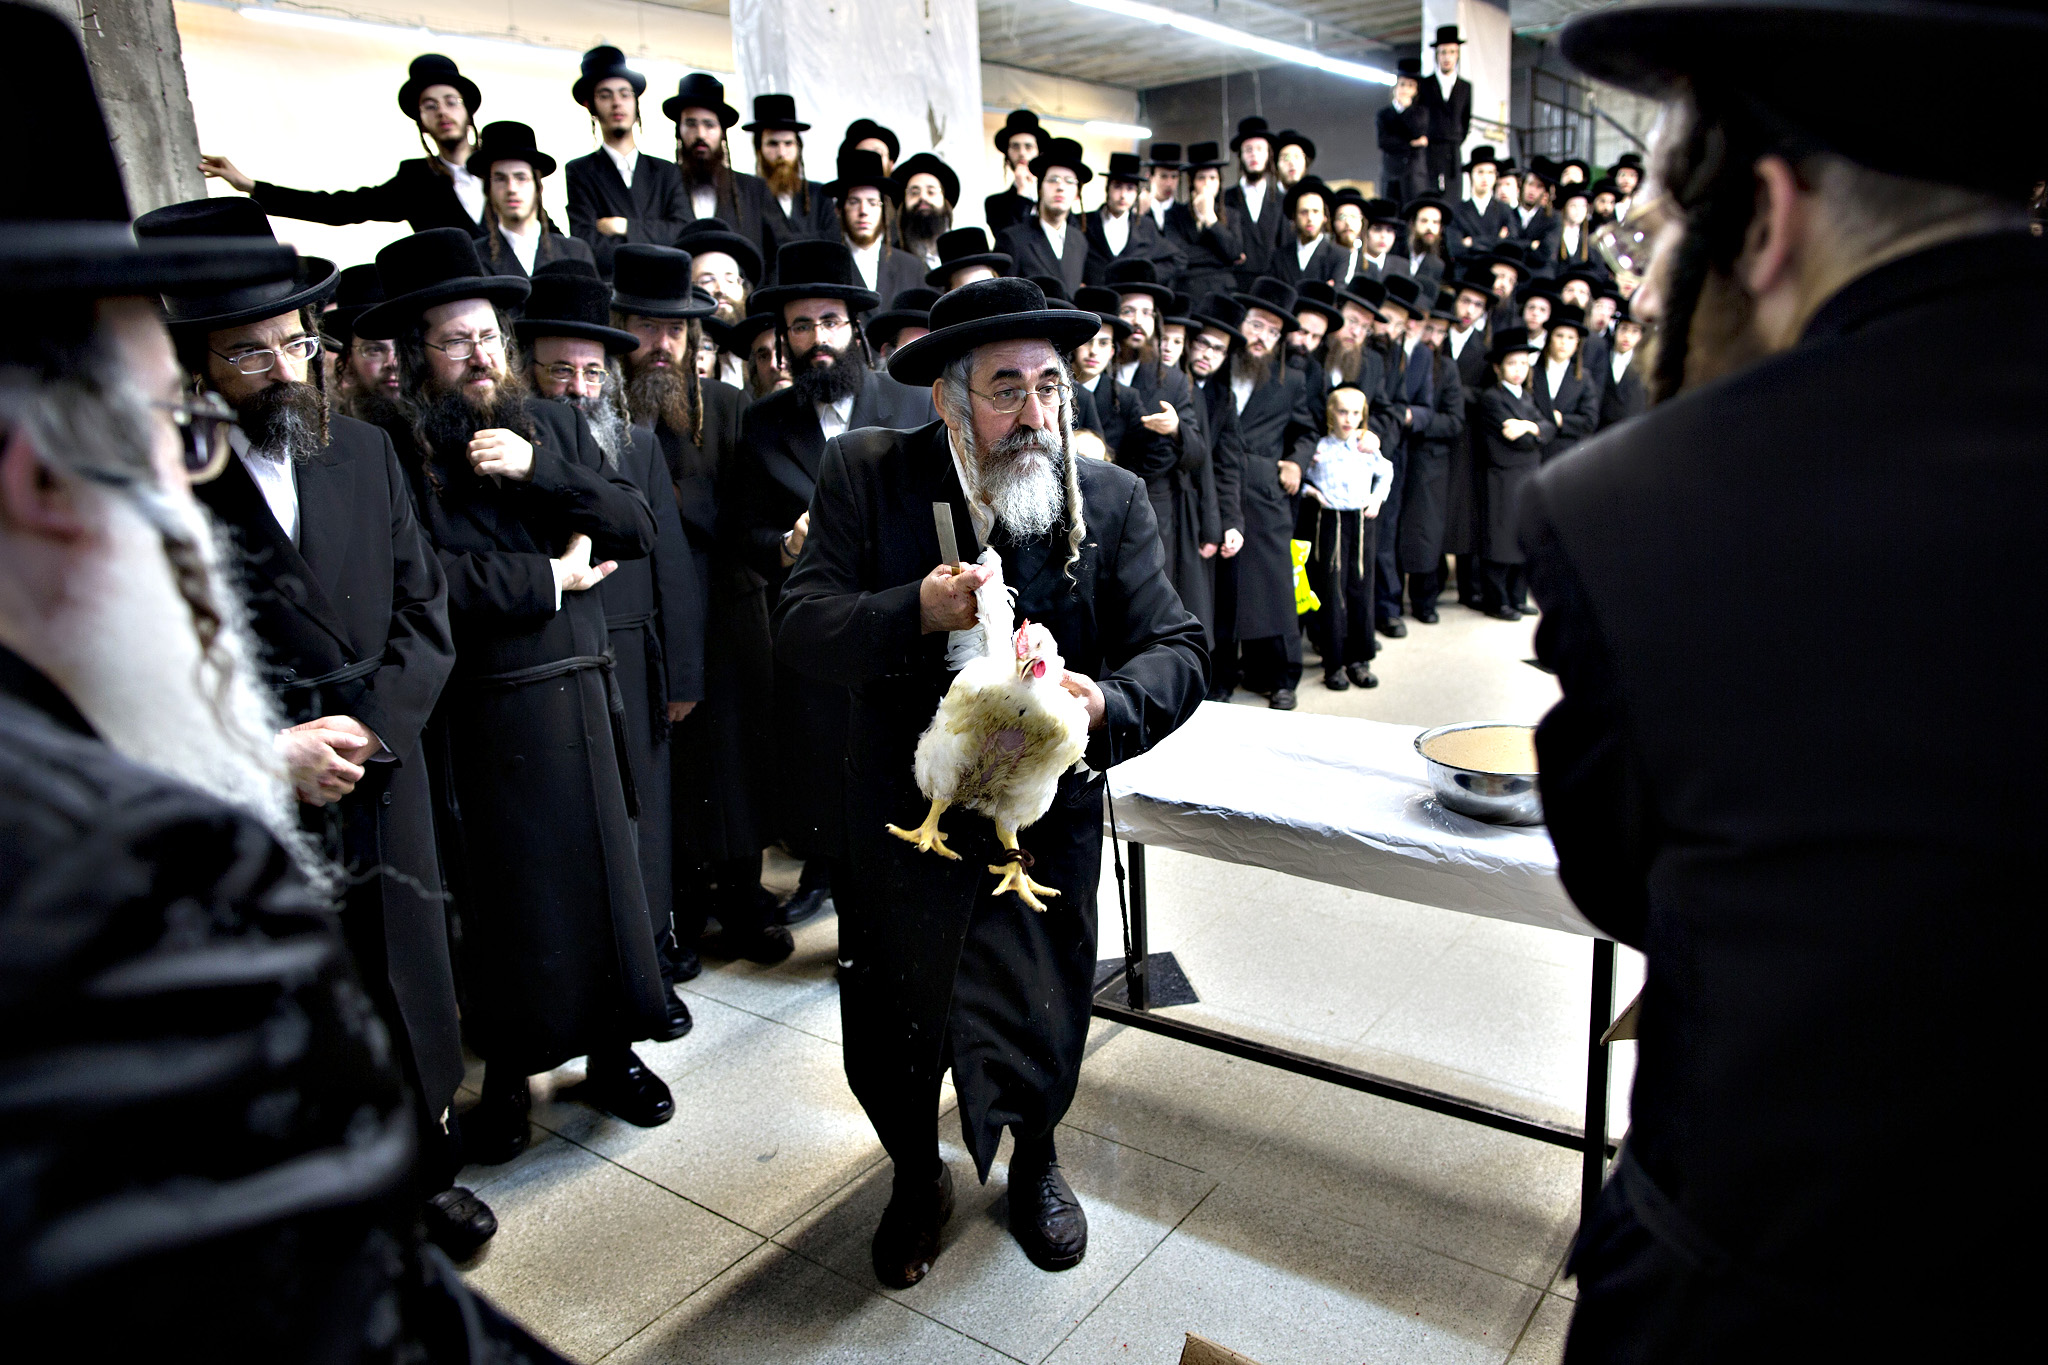 Ultra-Orthodox Jews of the Dorog Hassidic sect gather around a butcher just before he slaughter a chicken as part of the Kaparot ritual, in which it is believed that one transfers one's sins from the past year into the chicken, in the ultra-Orthodox city of Bnei Brak near Tel Aviv, Israel, Tuesday, Sept. 22, 2015. The ritual is performed before the Day of Atonement, Yom Kippur, the holiest day in the Jewish year which starts at sundown Tuesday